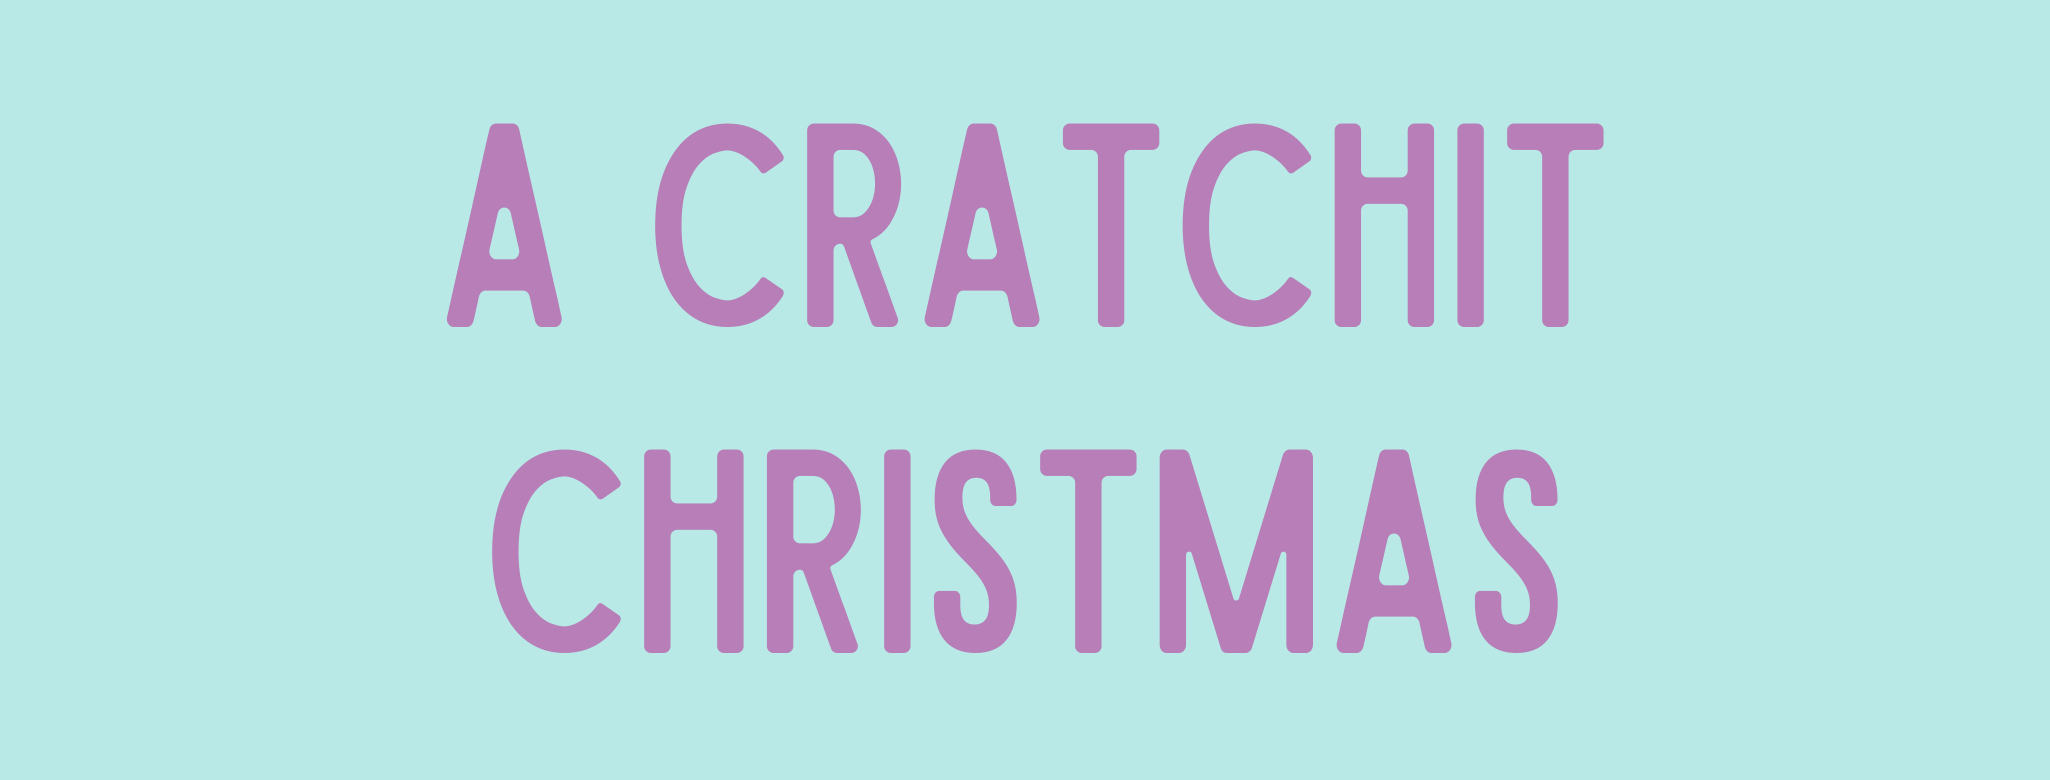 A Cratchit Christmas